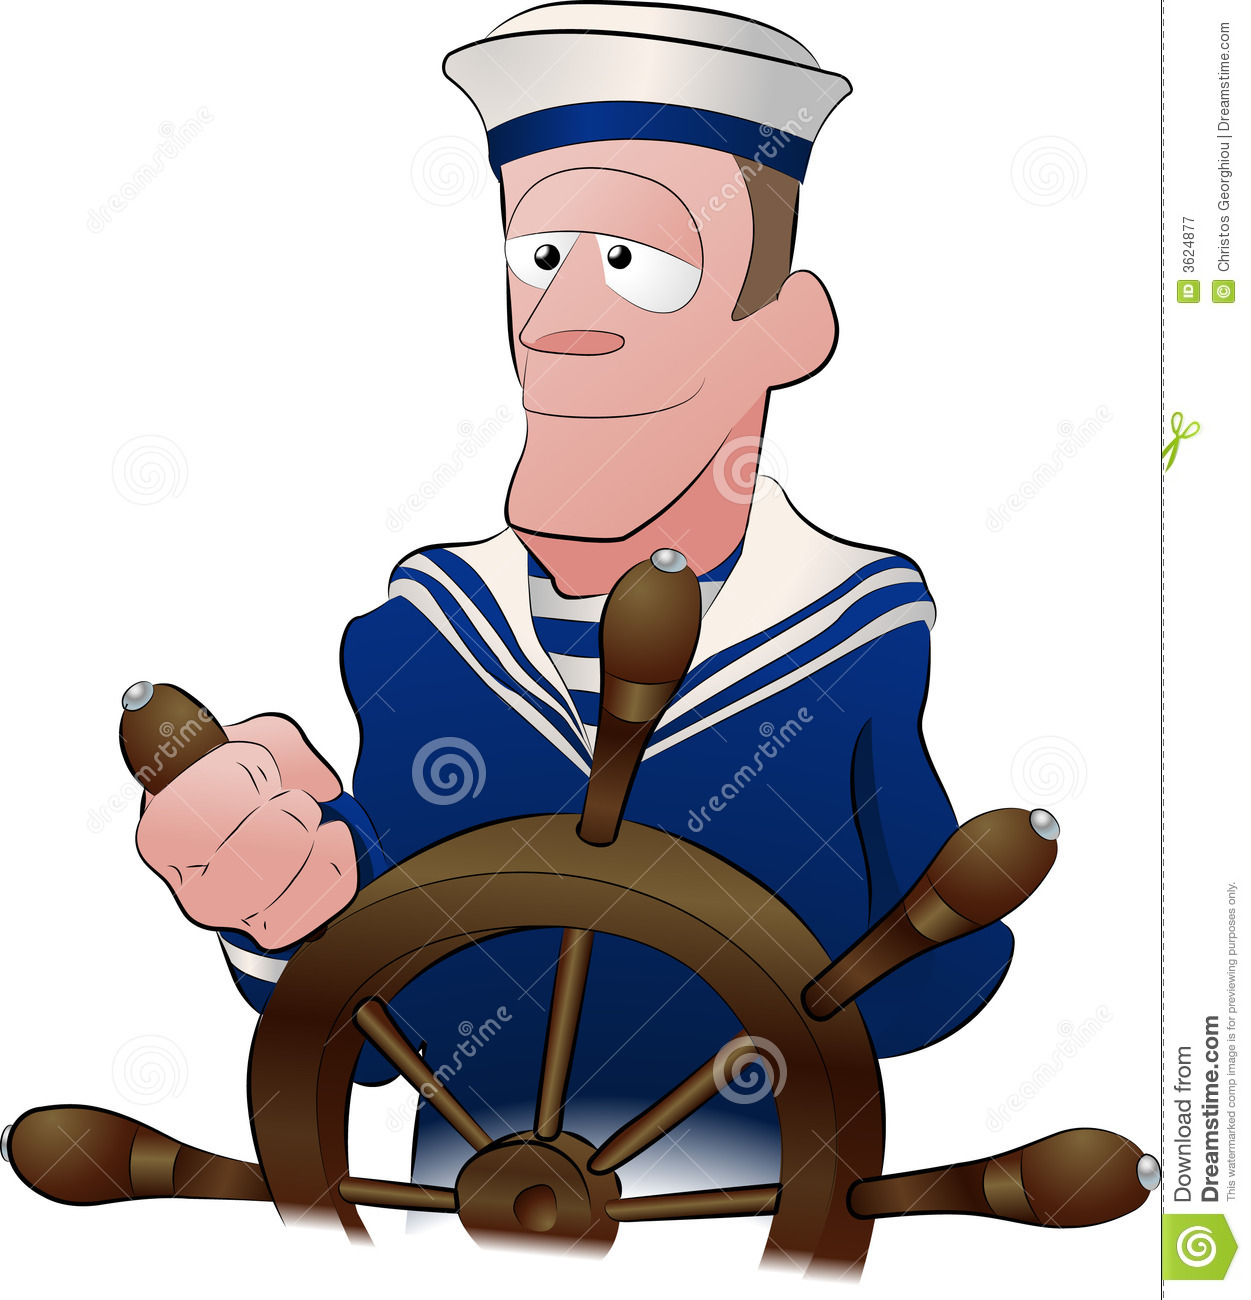 sailor illustration royalty free stock photography image navy clip art frames navy clipart free united states navy